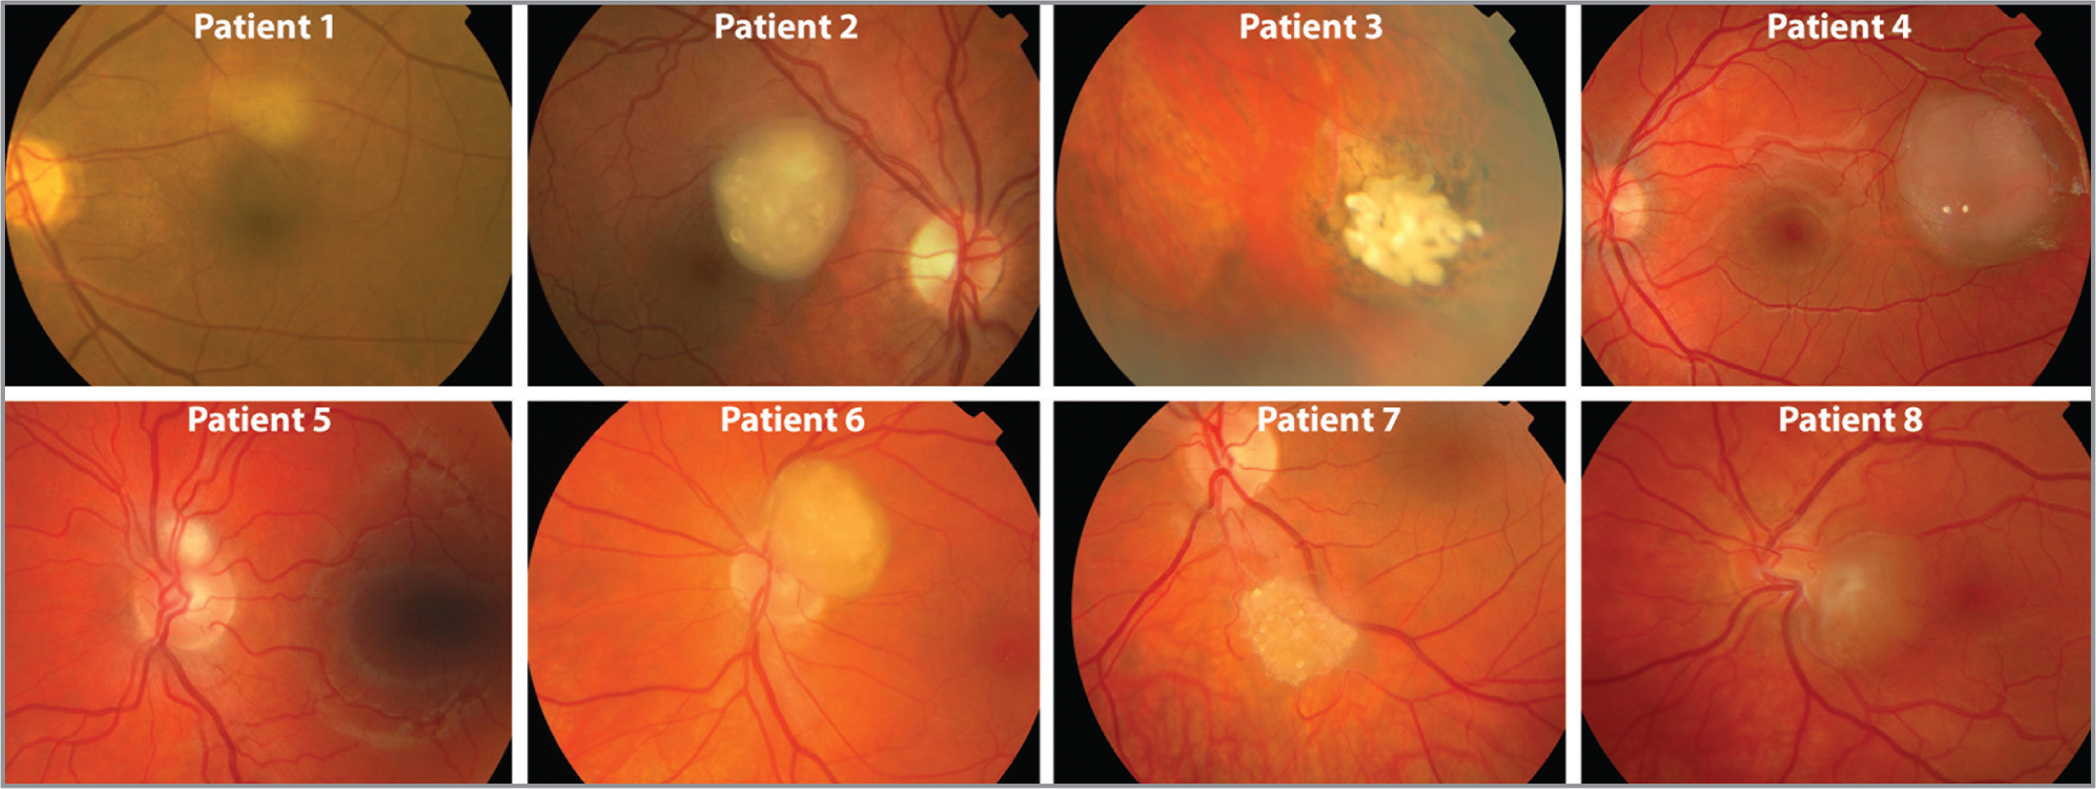 Color fundus photographs of all patients upon presentation. Images are numbered corresponding to the patient labels consistent in other Tables and Figures.